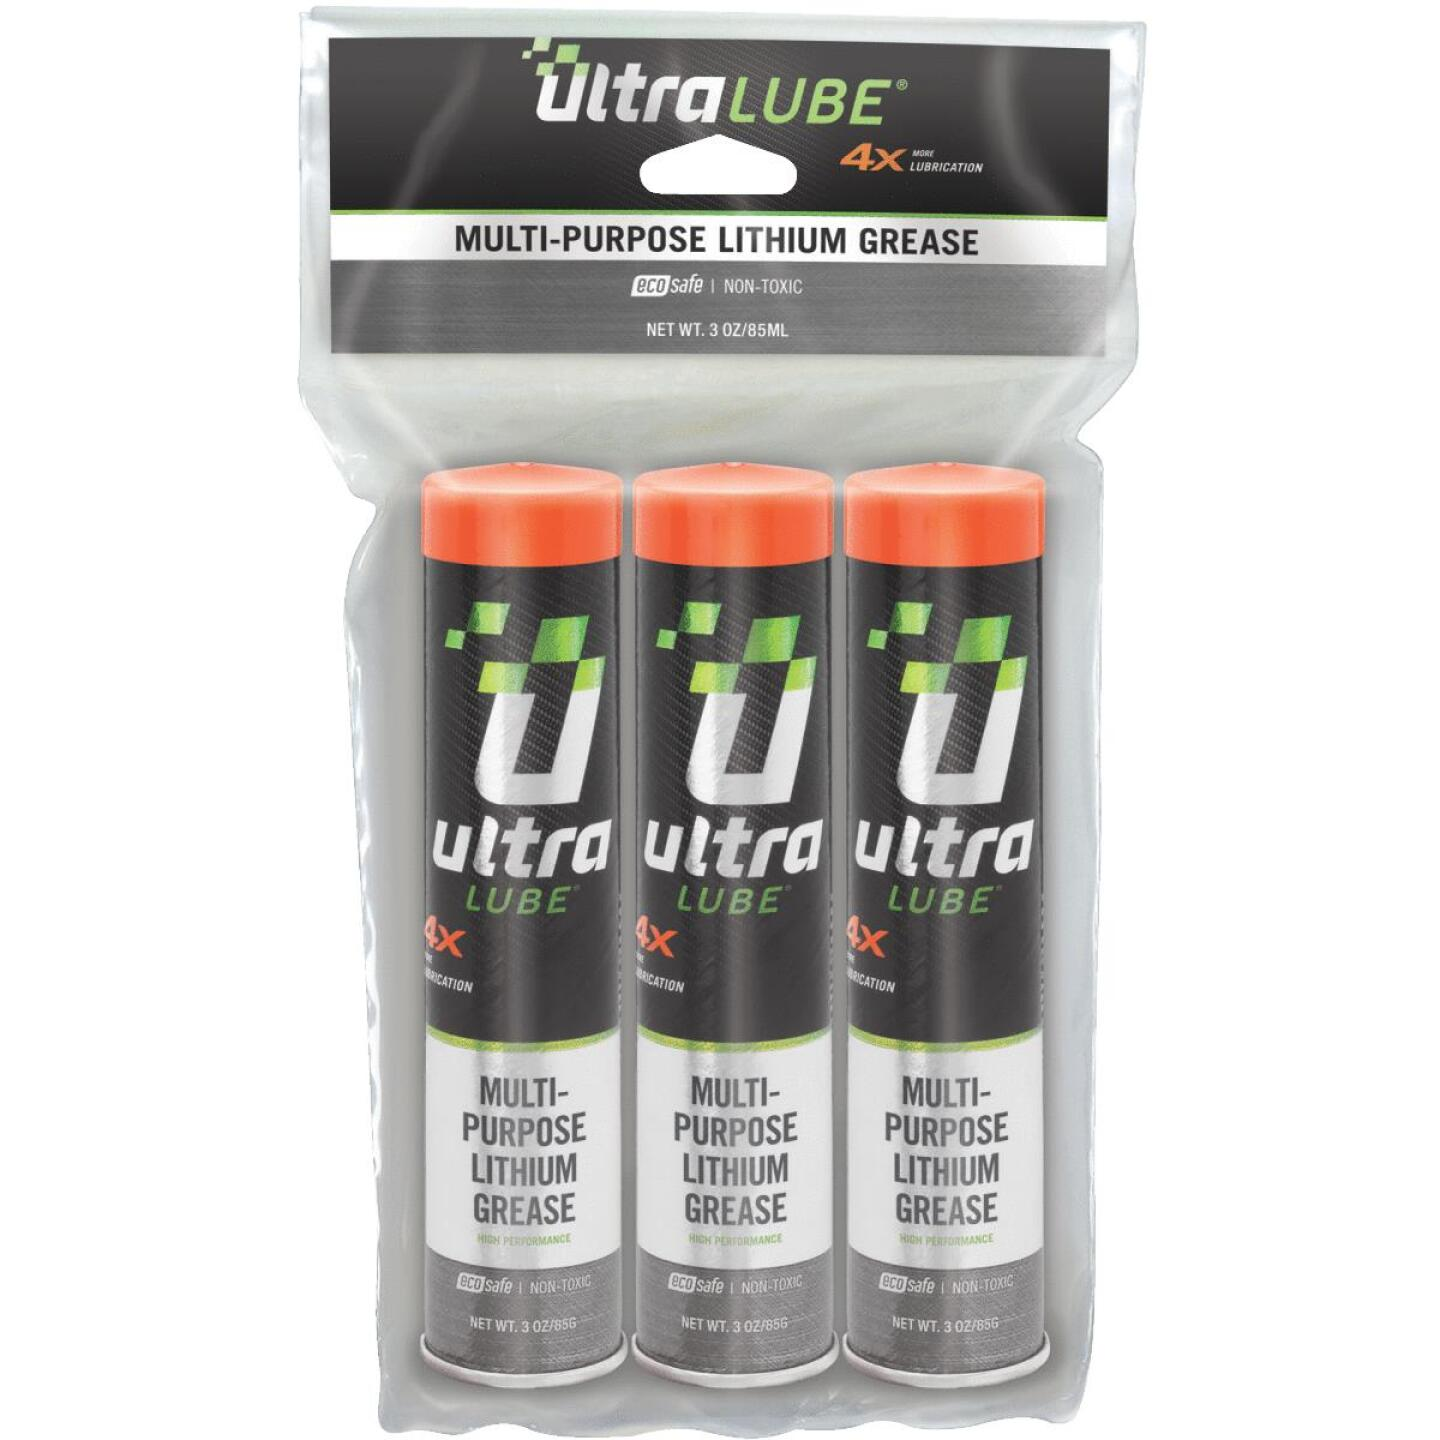 UltraLube 3 Oz. Cartridge Multi-Purpose Lithium Grease Image 2